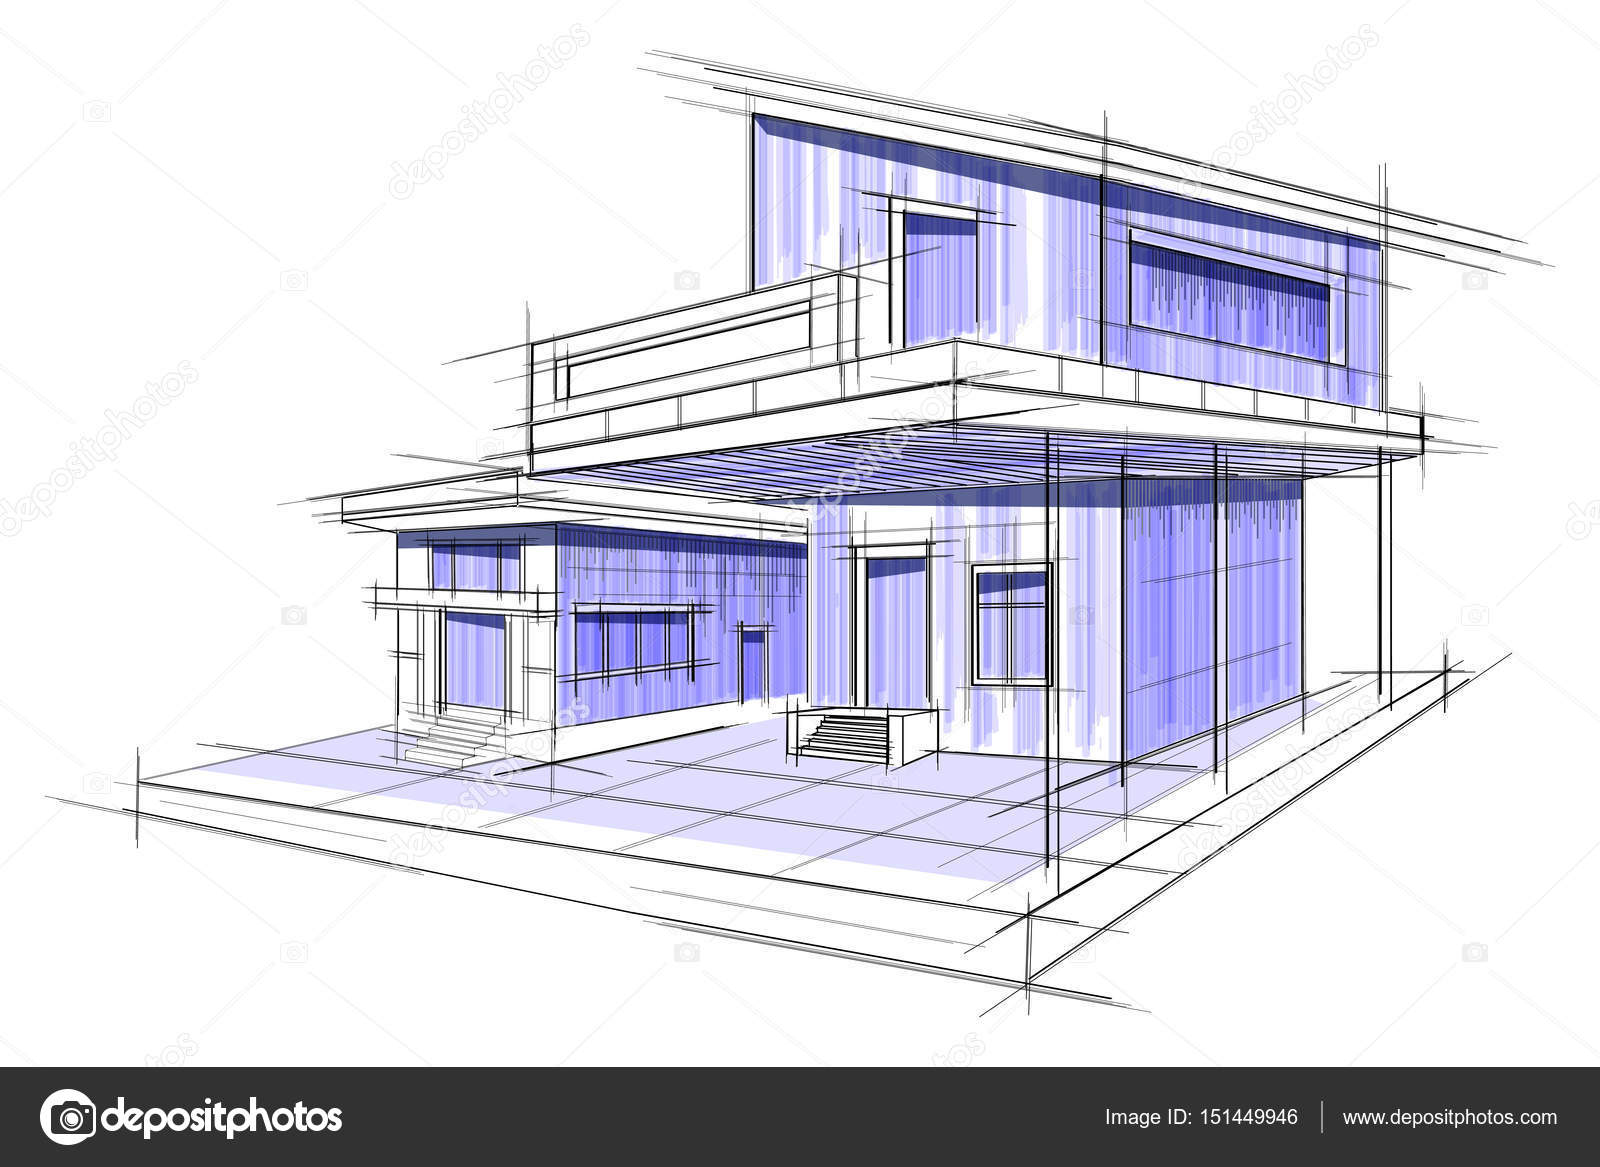 Sketch of exterior building draft blueprint design stock vector easy to edit vector illustration of sketch of exterior building draft blueprint design vector by snapgalleria malvernweather Images